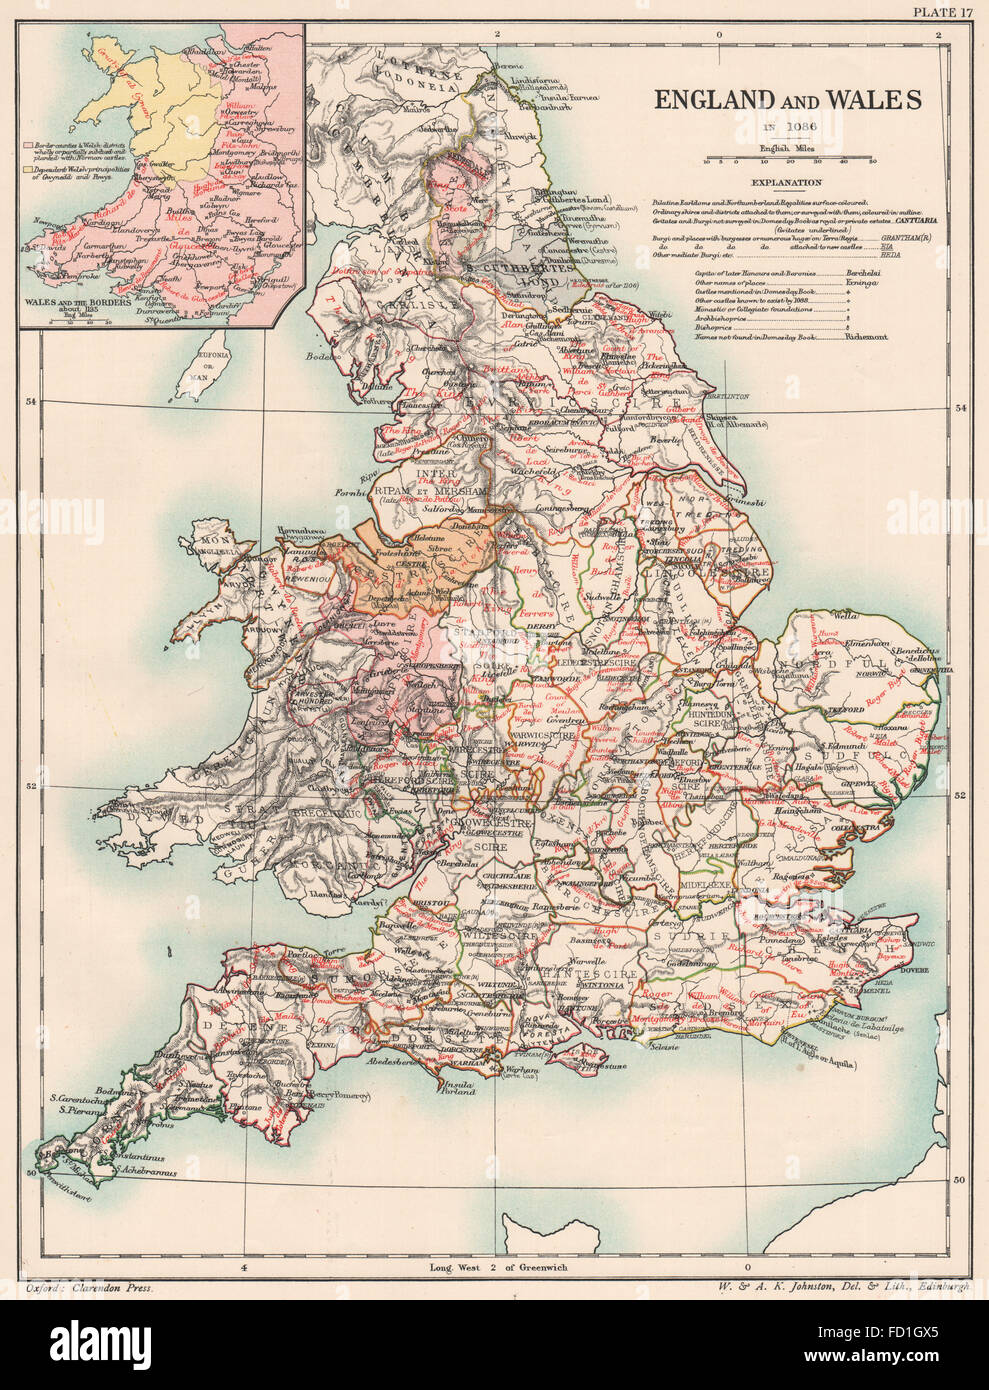 Britain map book stock photos britain map book stock images alamy norman britain 1086 england wales of domesday book borders 1185 1902 map gumiabroncs Gallery